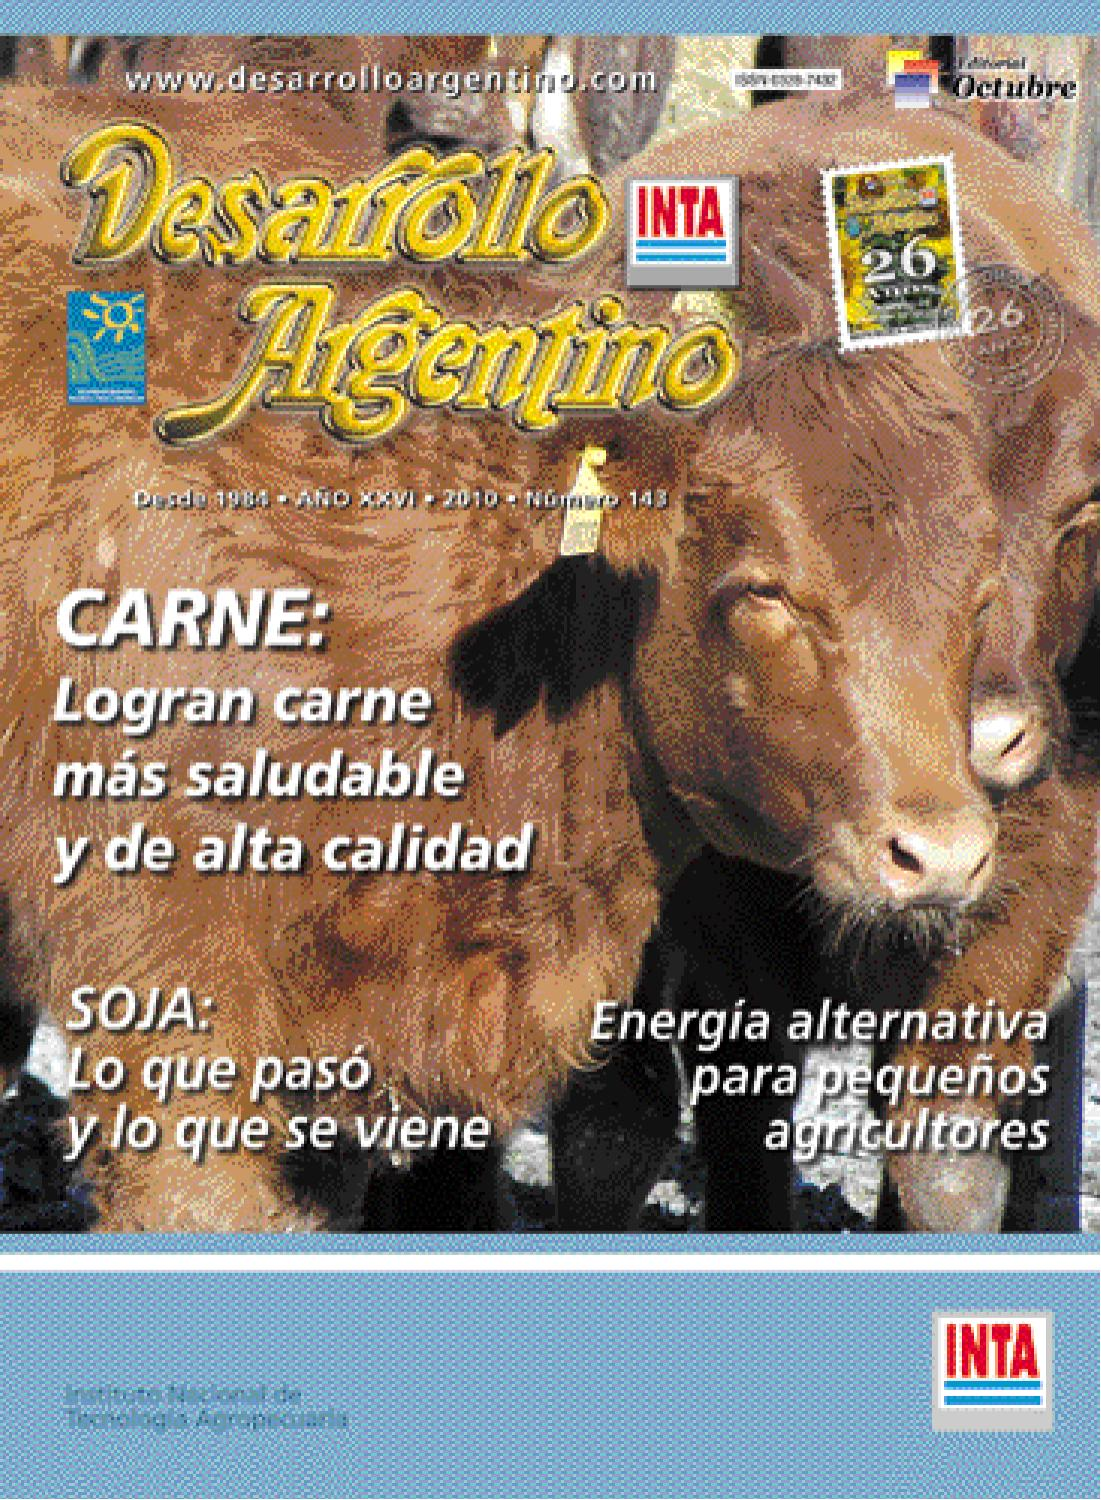 La revista del campo argentino by desarrollo argentino issuu for Revistas del espectaculo argentino